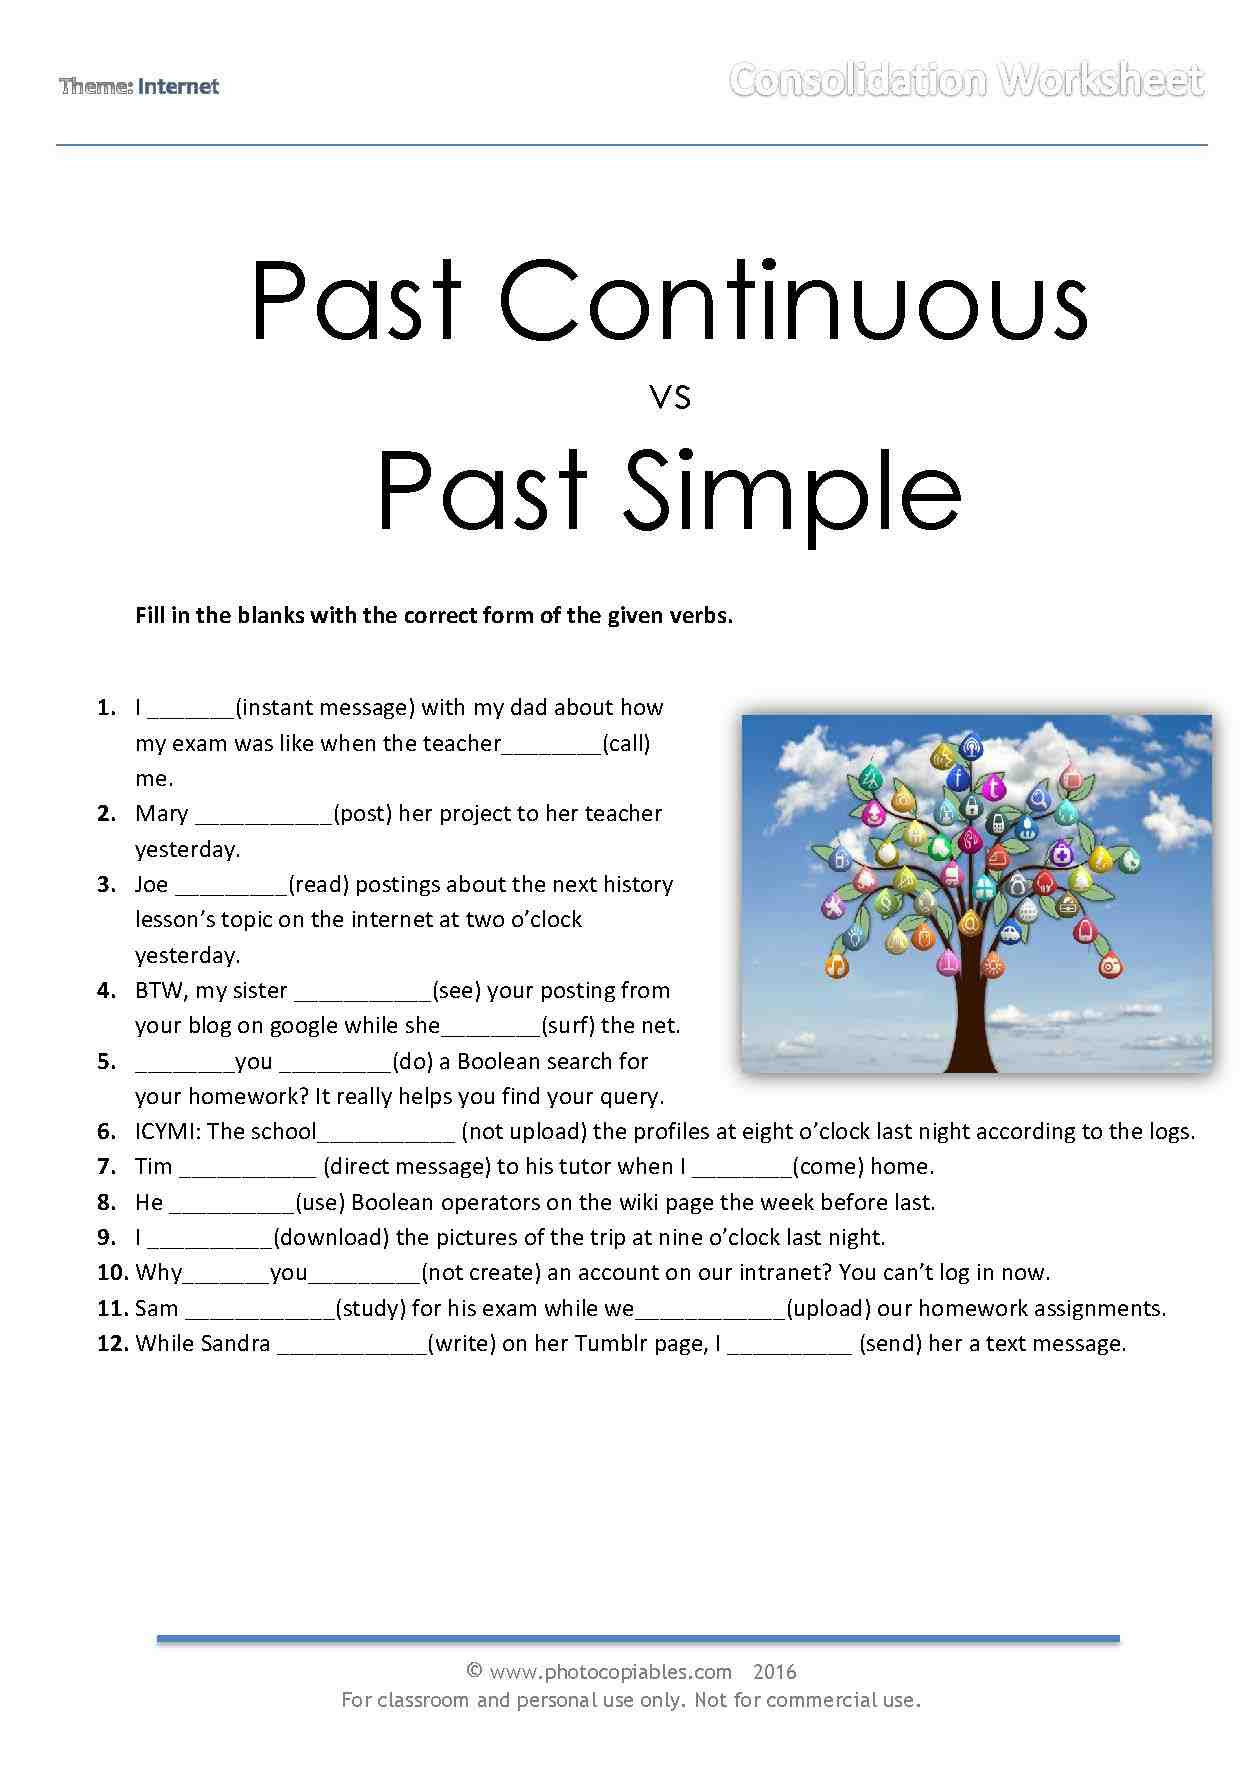 Past Continuous Vs Past Simple Consolidation Online Quiz Photocopiables